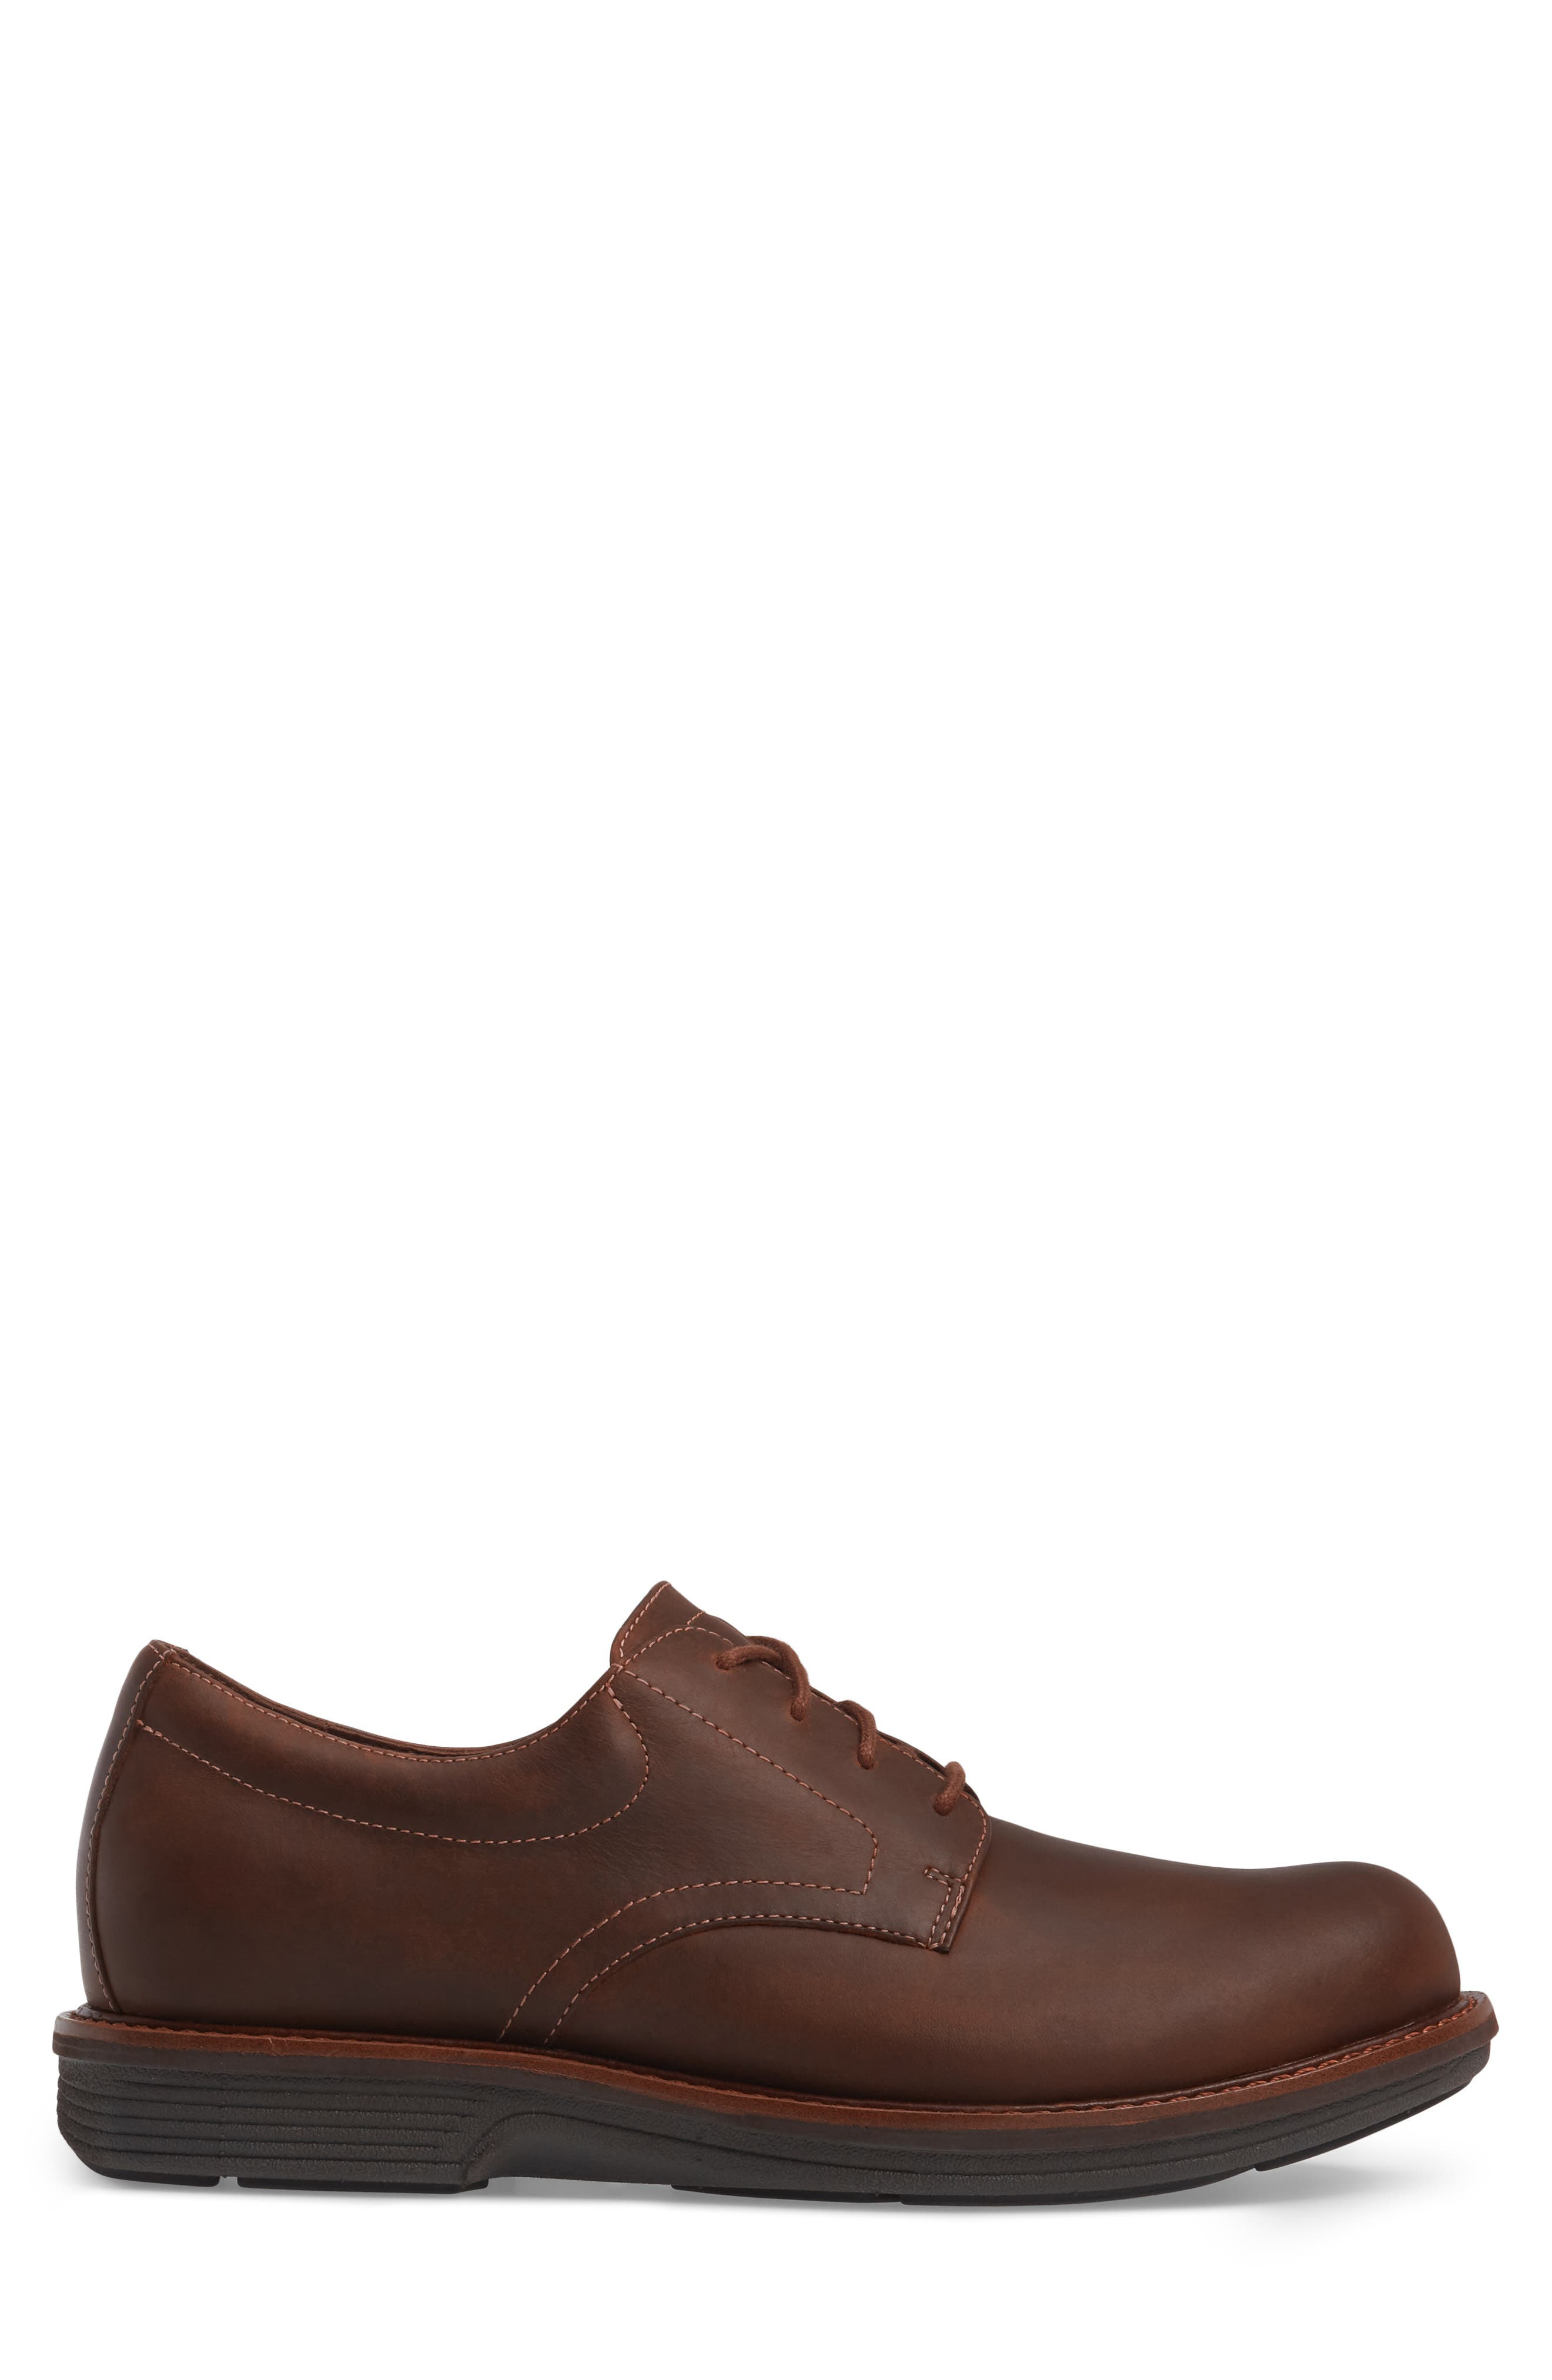 'Josh' Plain Toe Derby,                             Alternate thumbnail 3, color,                             Brown Pull-Up Leather